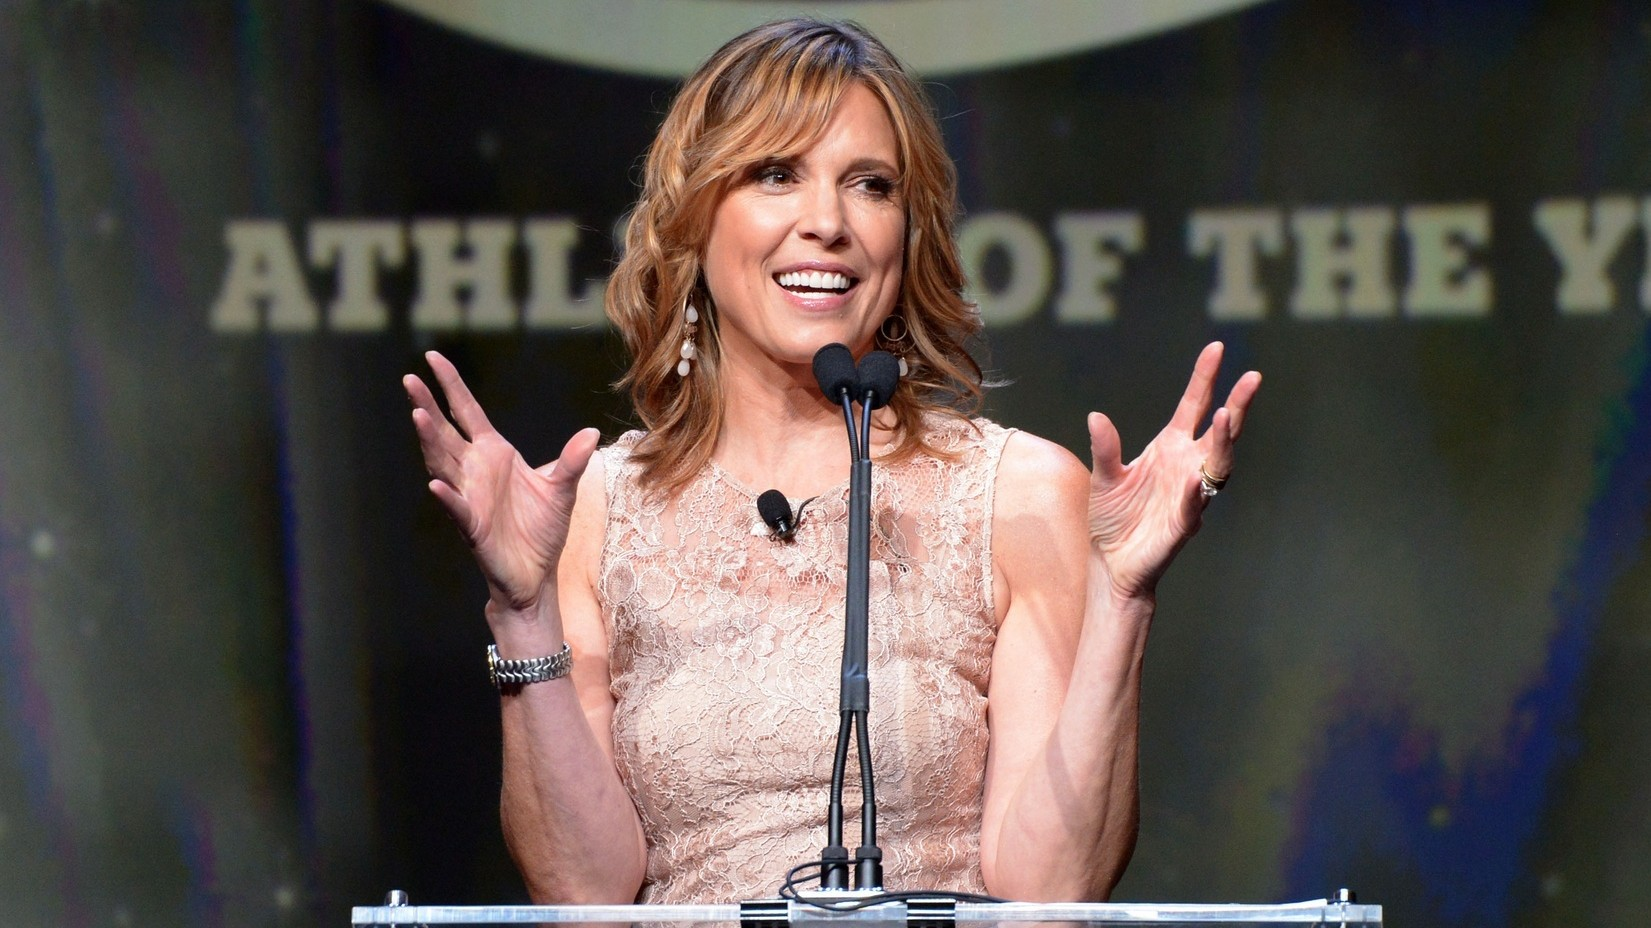 VICE Sports Q&A: Hannah Storm on Wimbledon and Powerful Women in Sports